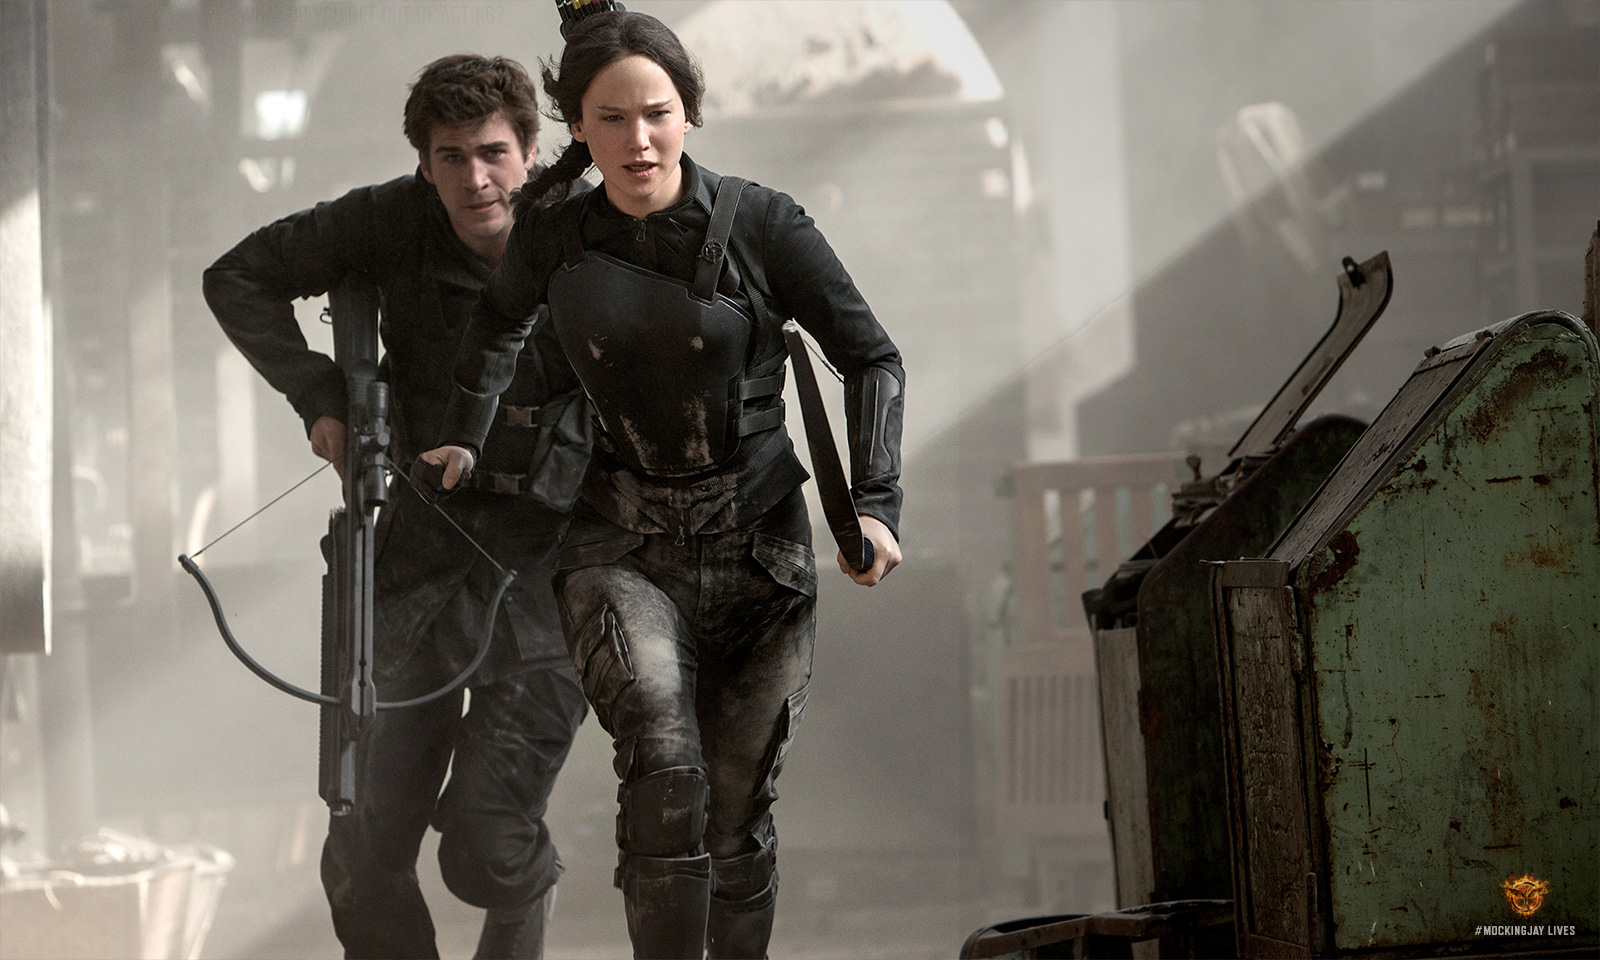 THE HUNGER GAMES: MOCKINGJAY - PART 1 - The Review - We